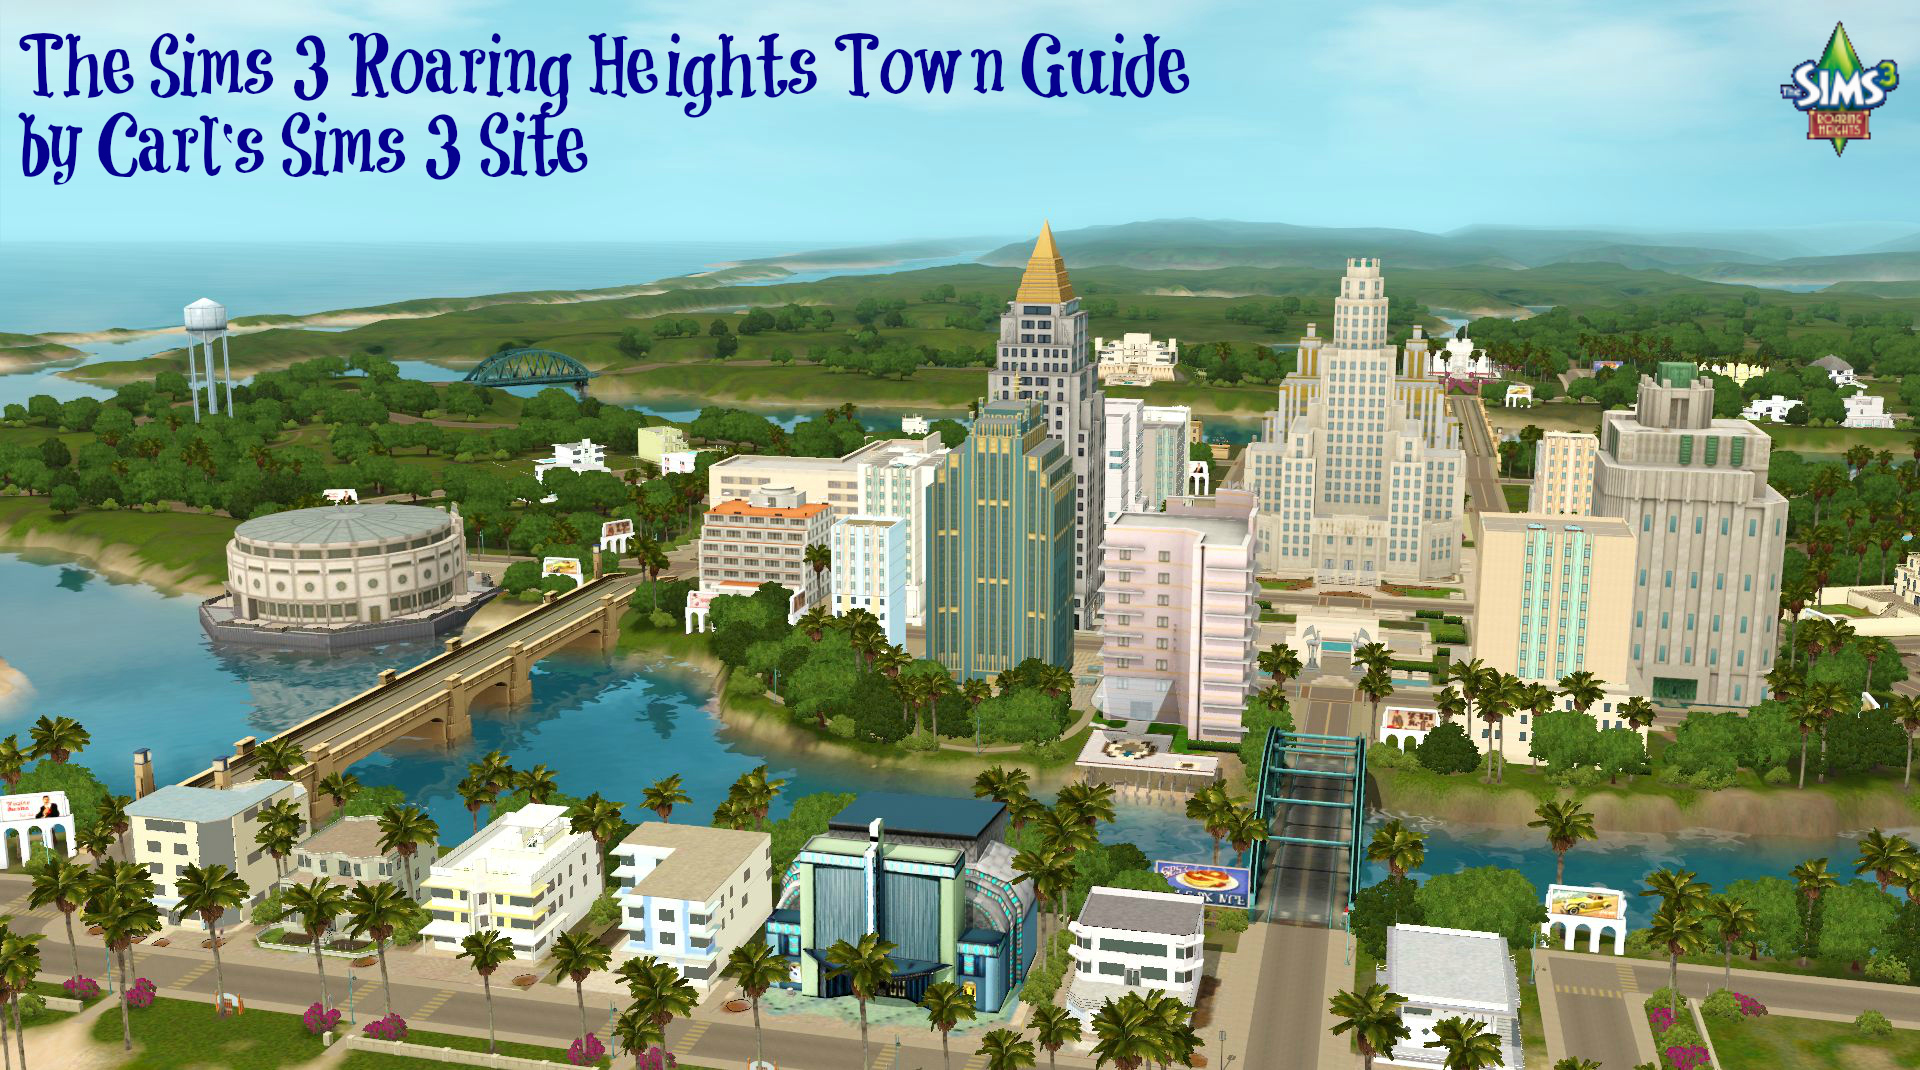 The Sims 3 Roaring Heights World: A Picture Of The Town